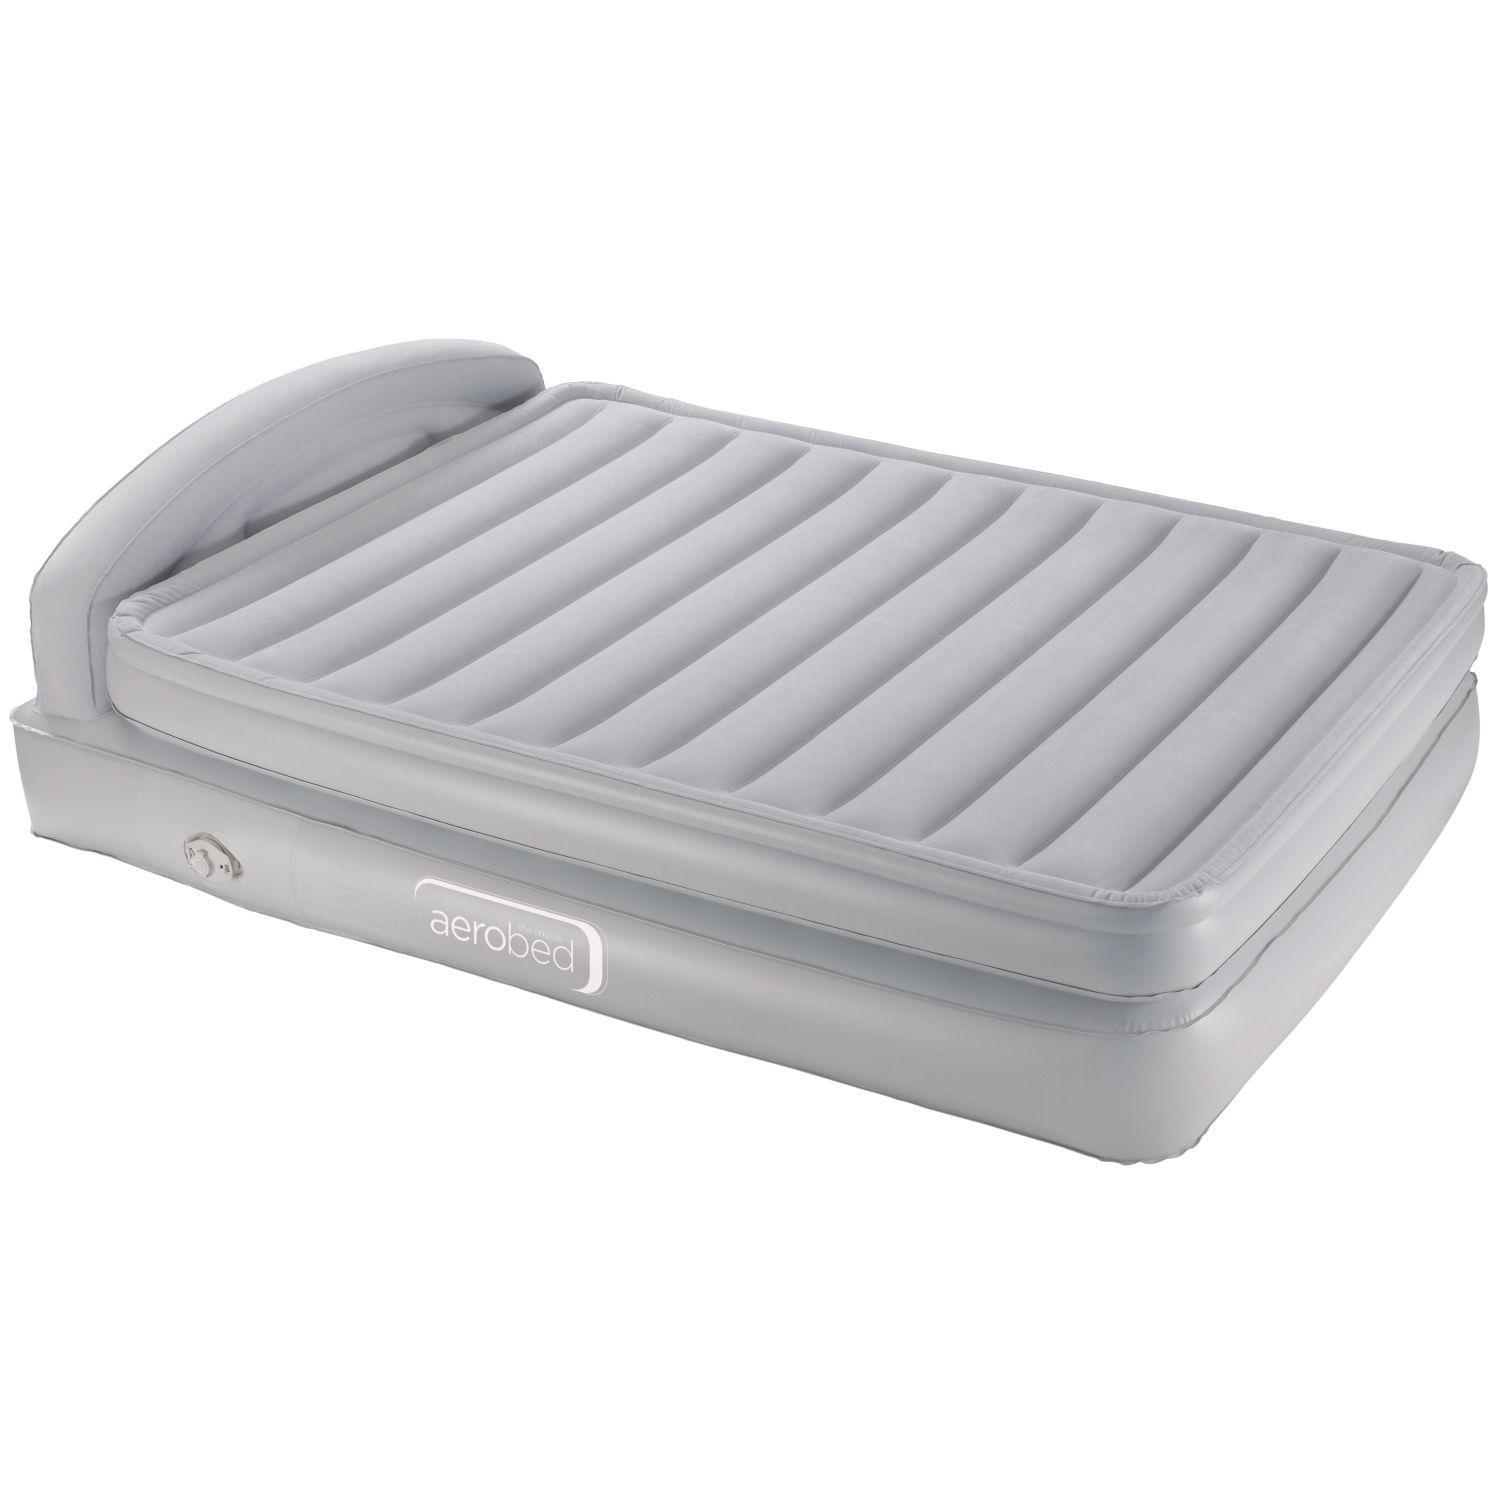 Aerobed King Comfort Classic Air Bed Raised With Headboard From